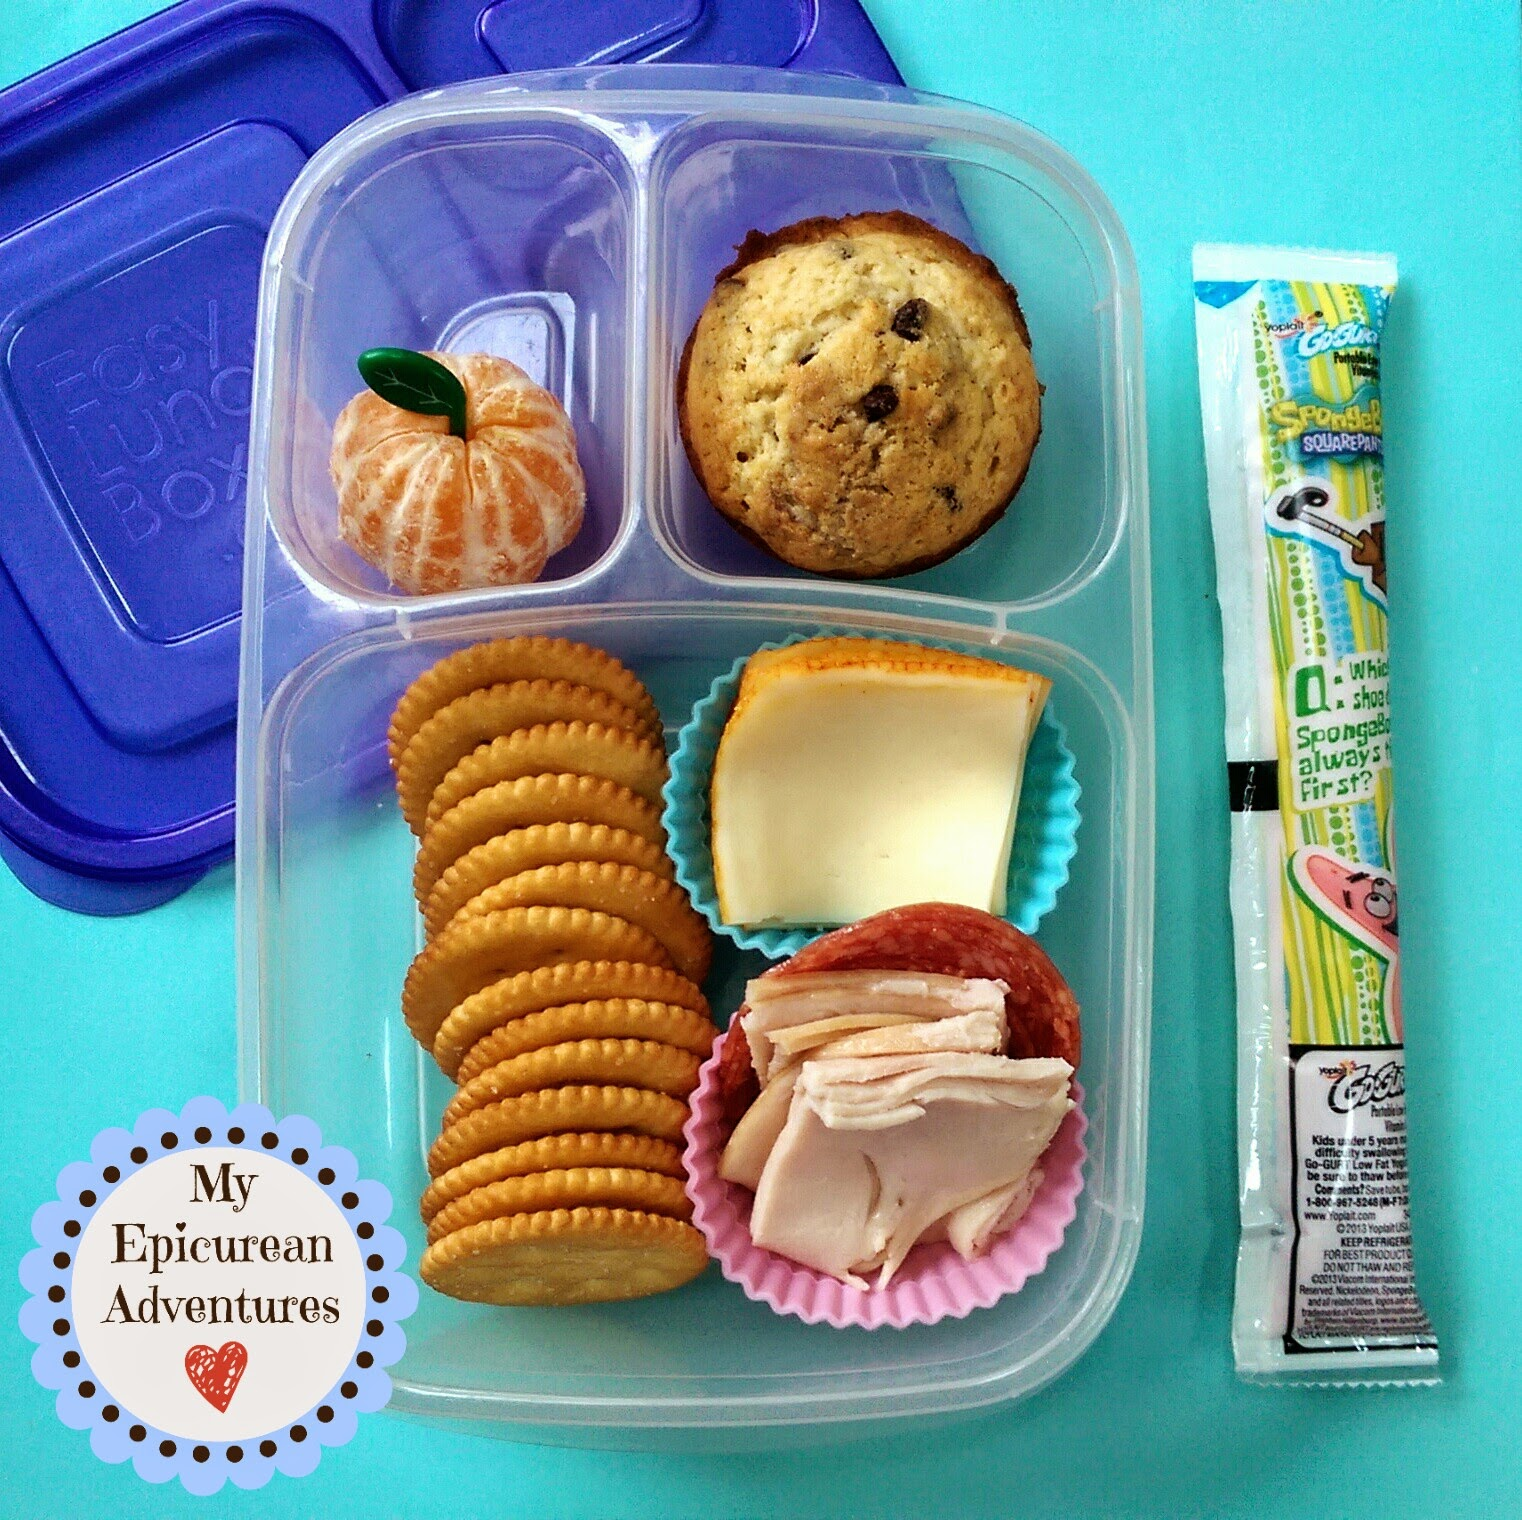 My Epicurean Adventures: Here's Lunch #37: Cheese and Cracker Lunchables and a Muffin in @easylunchboxes